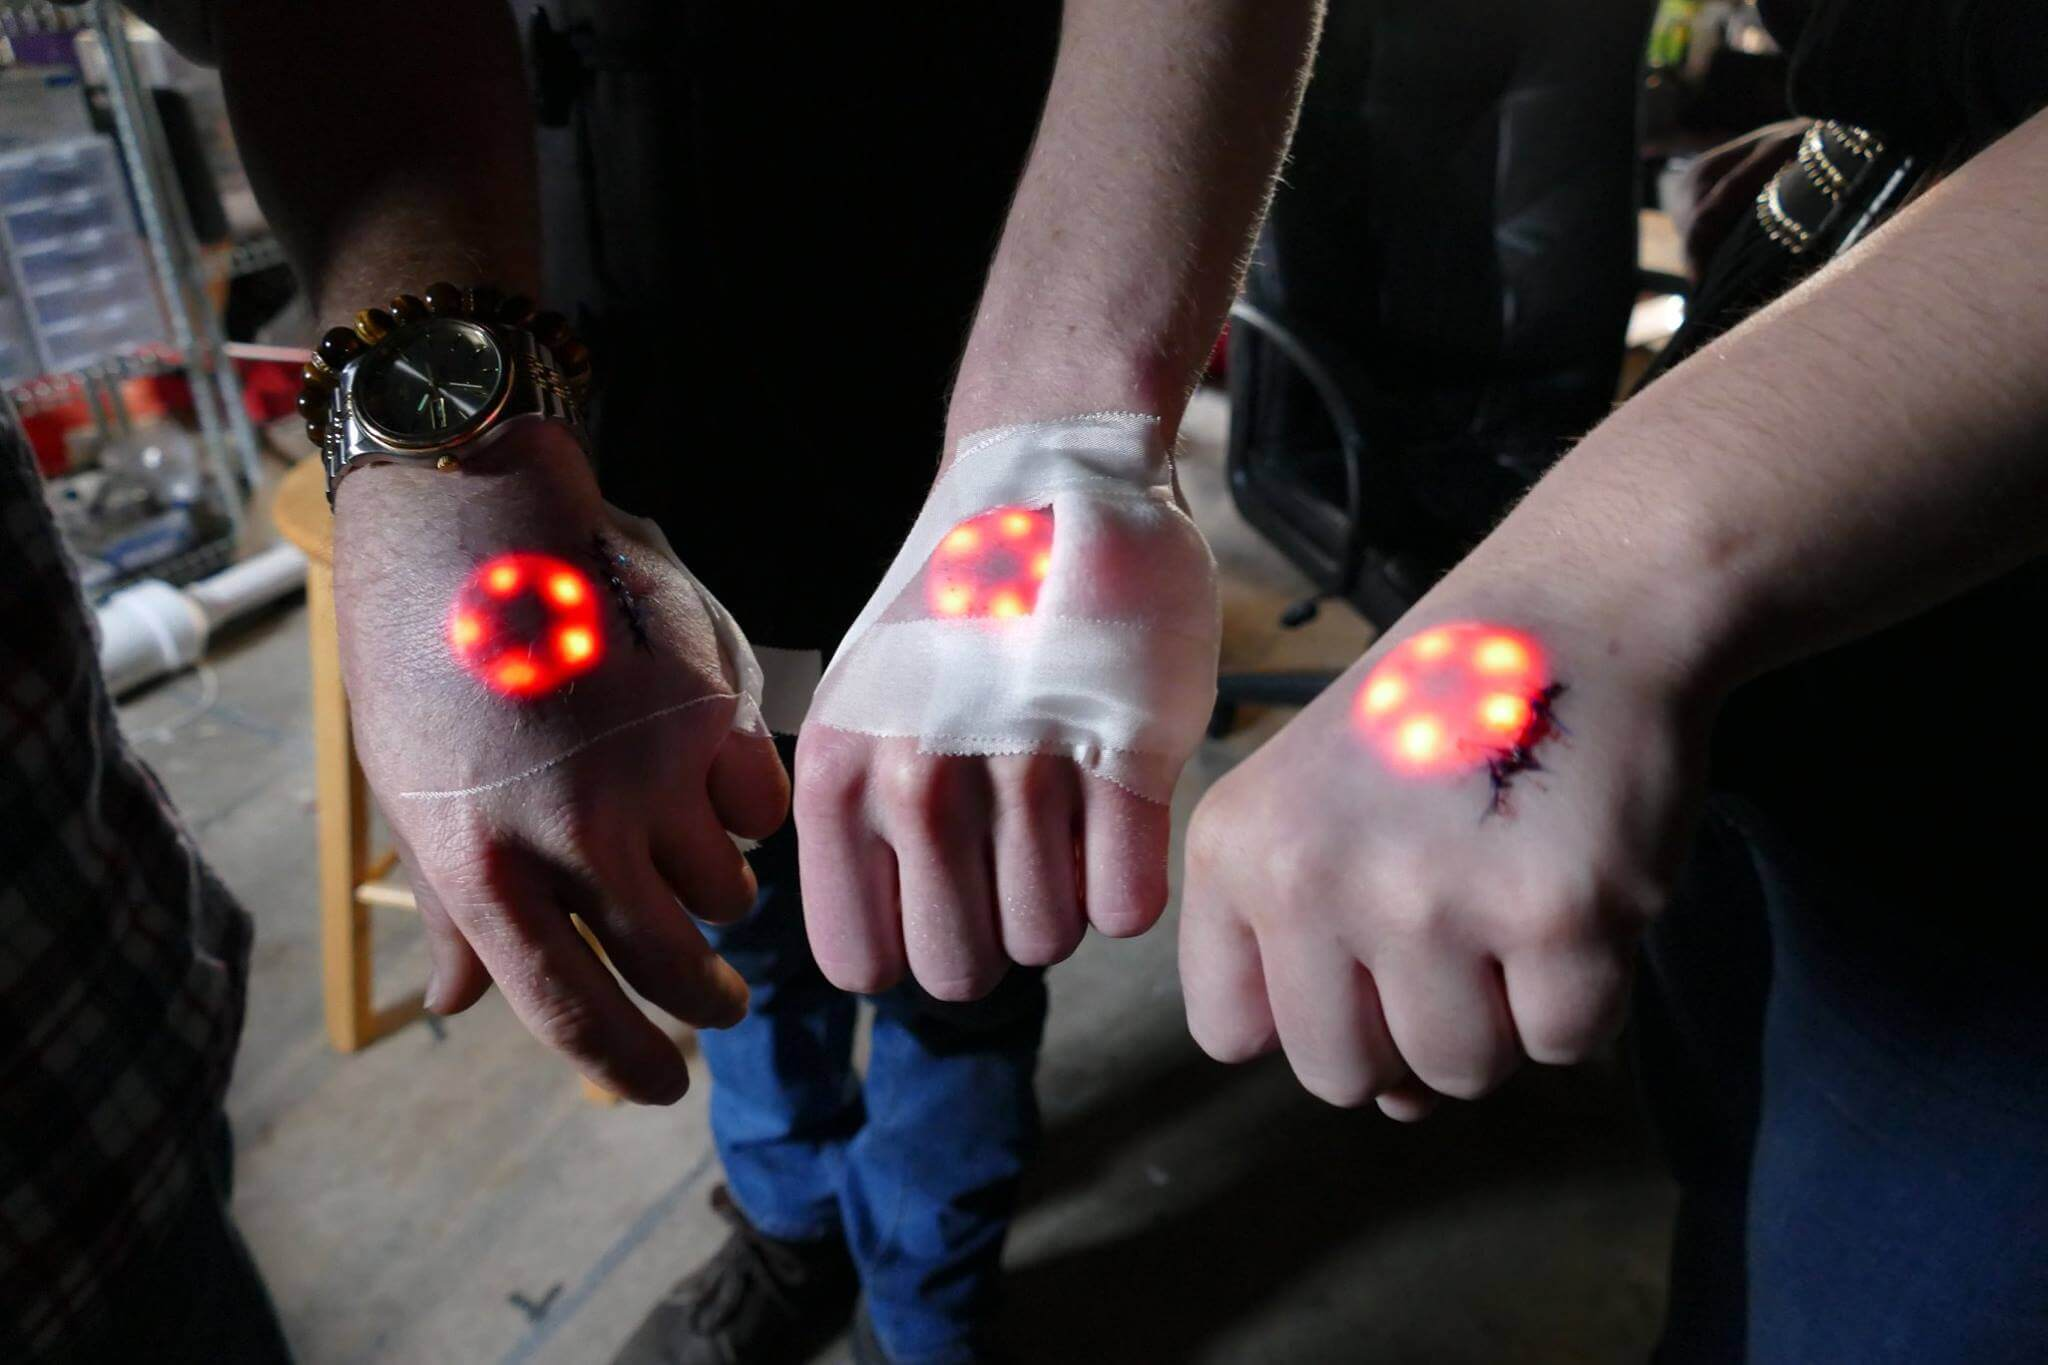 The Future of Biohacking: Implanted LED Lights